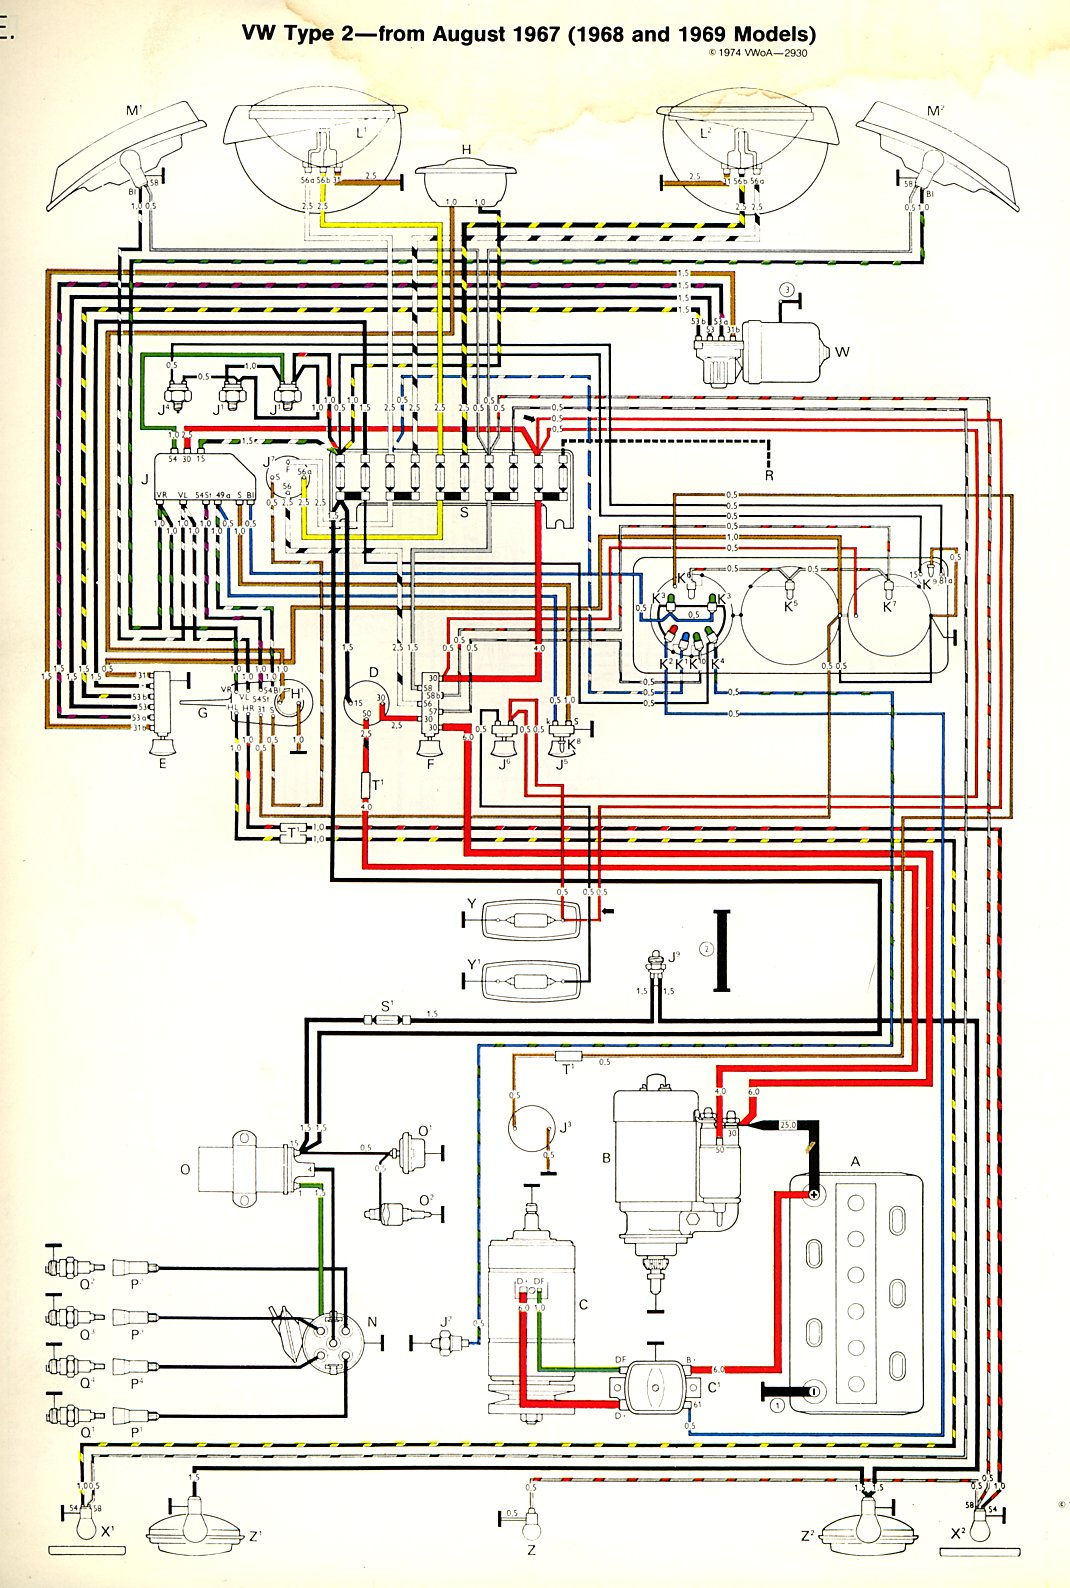 baybus_6869a thesamba com type 2 wiring diagrams 1973 vw wiring diagram at reclaimingppi.co